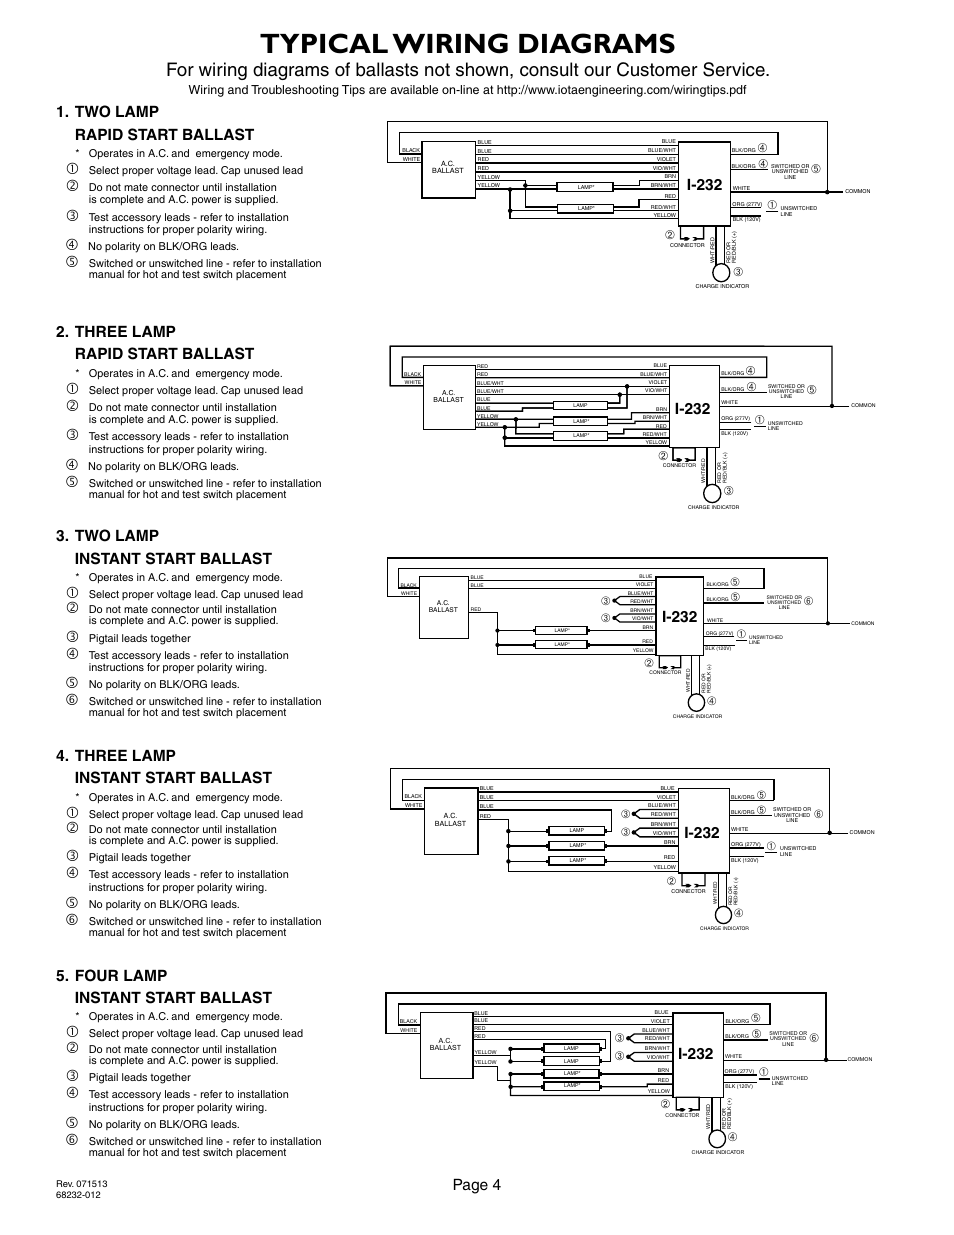 Typical wiring diagrams, Page 4, I-232 | IOTA I-232 User ... on